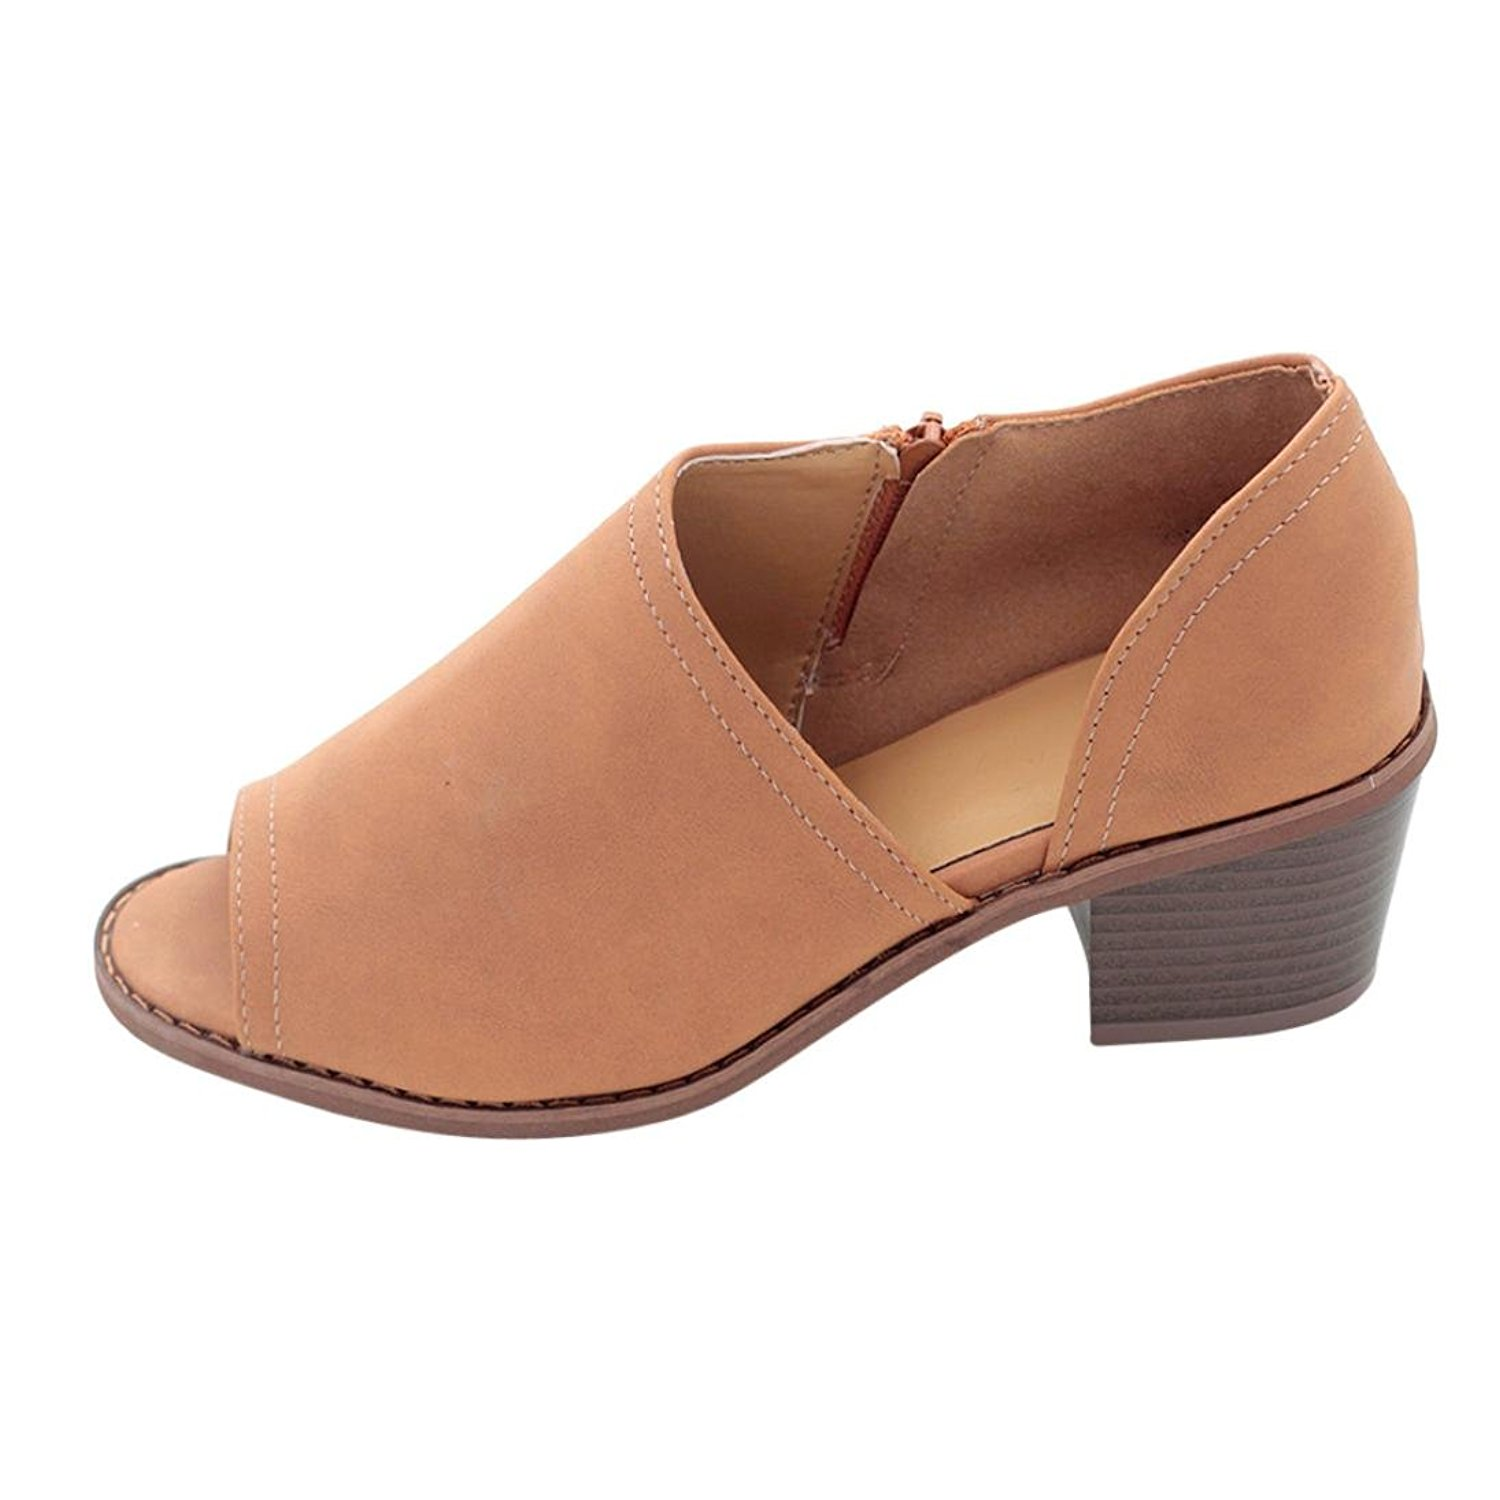 99f48d92b Get Quotations · Ninasill Clearance ! Summer On Sale Shoe